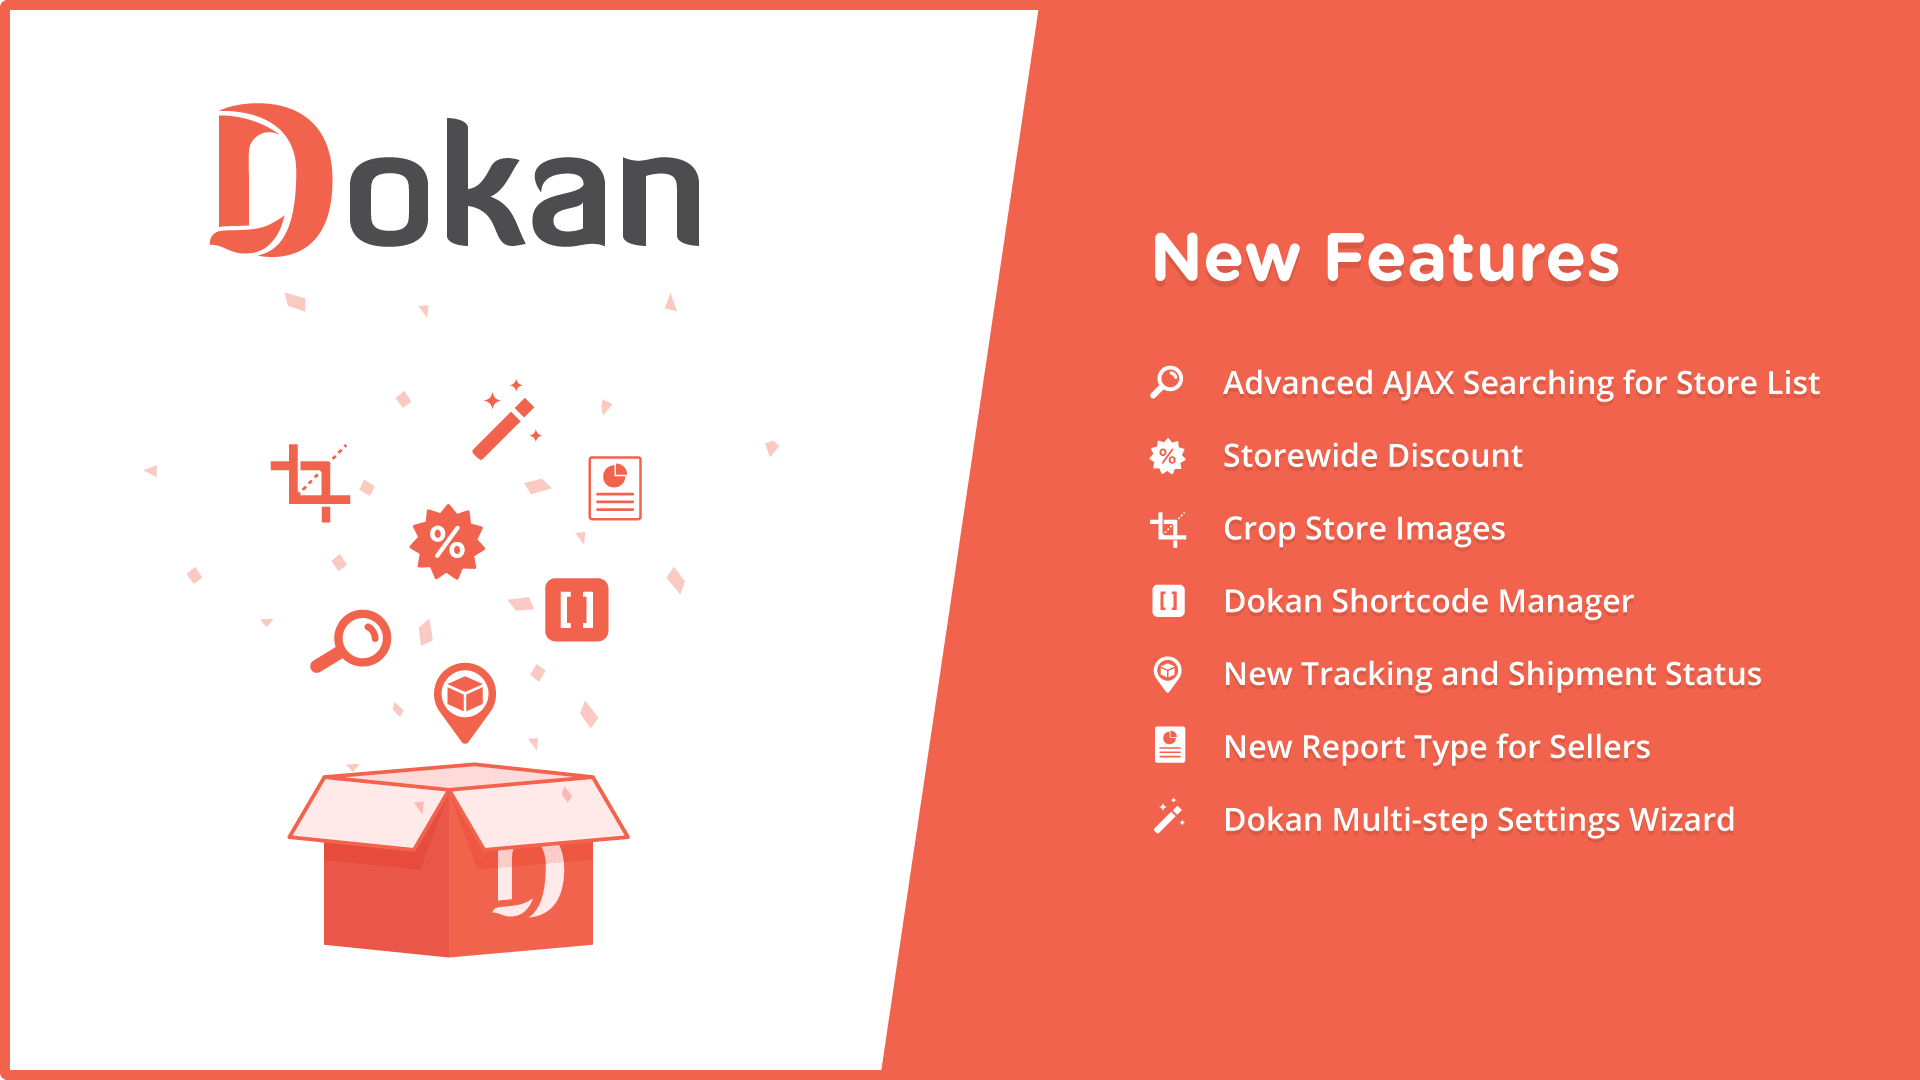 Upcoming New Features From Dokan Hack Month